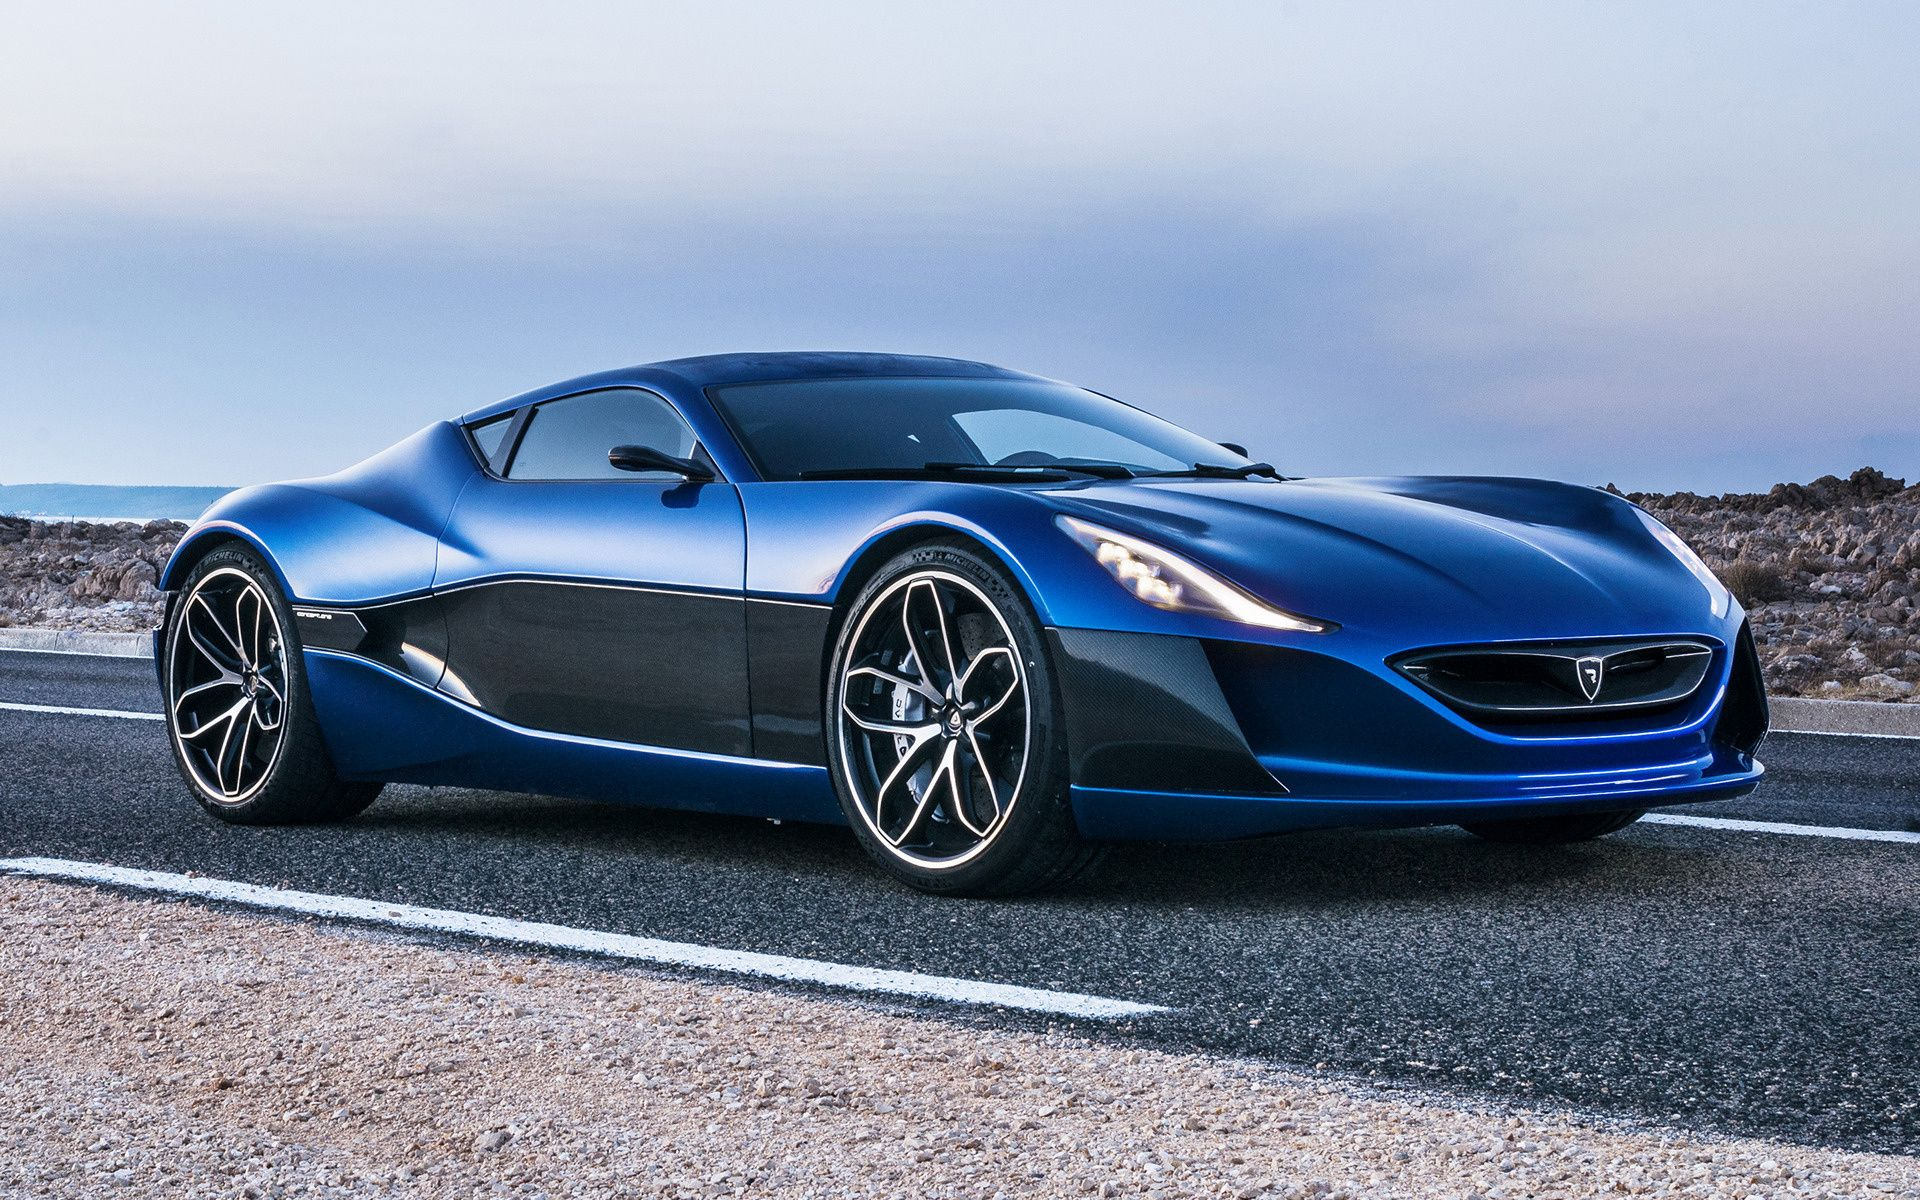 The All Electric Rimac Concept 1 Car In The World Bugatti Veyron Super Sport Fast Cars